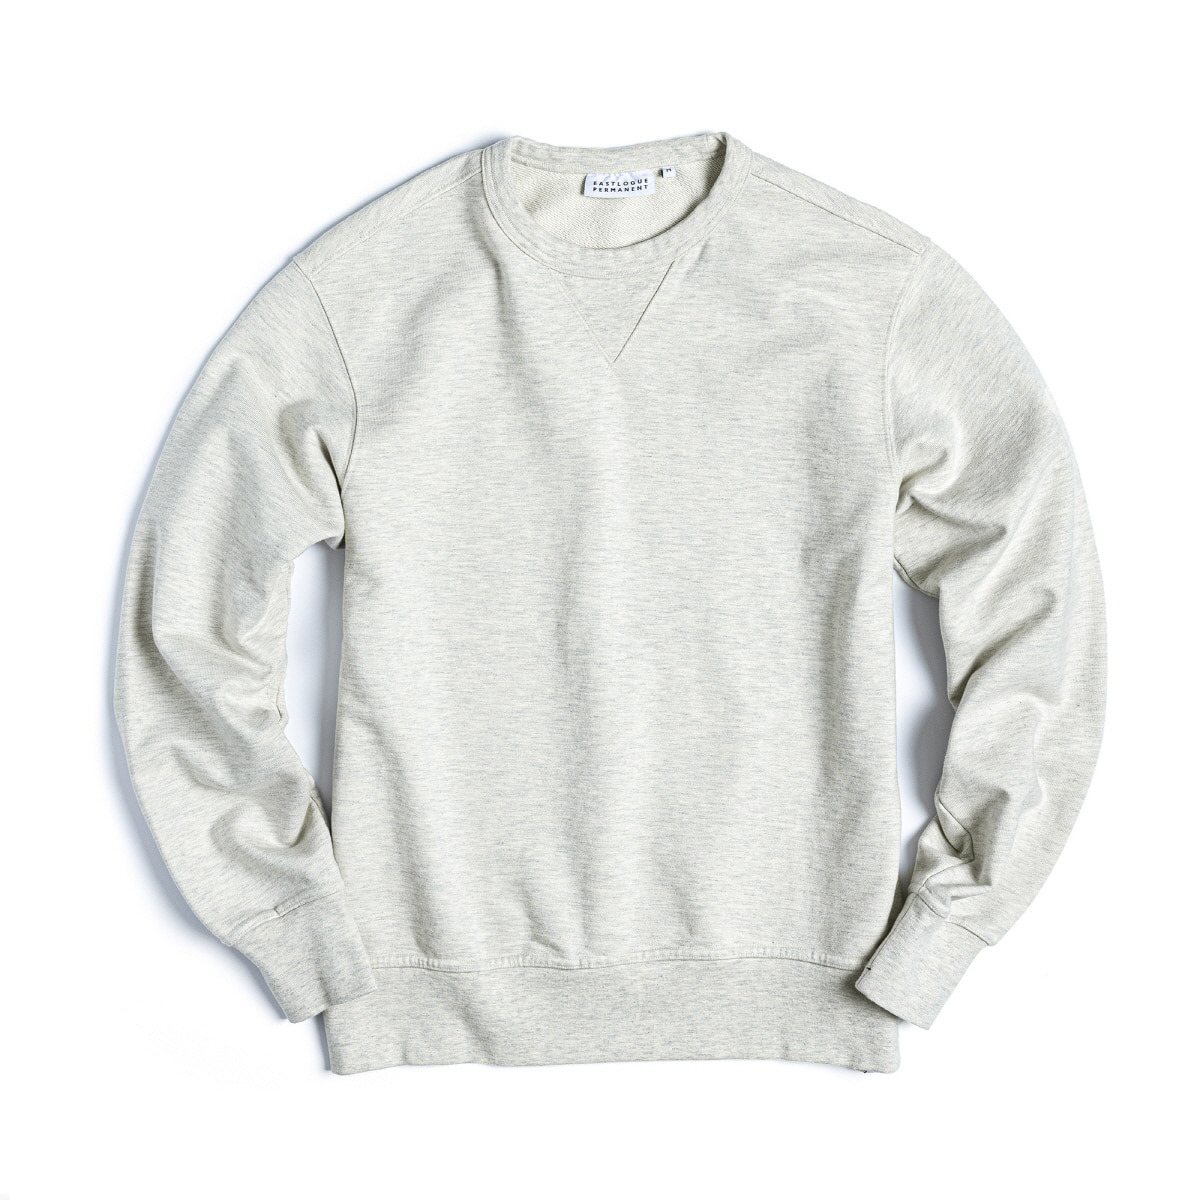 SWEAT SHIRT (Oatmeal)